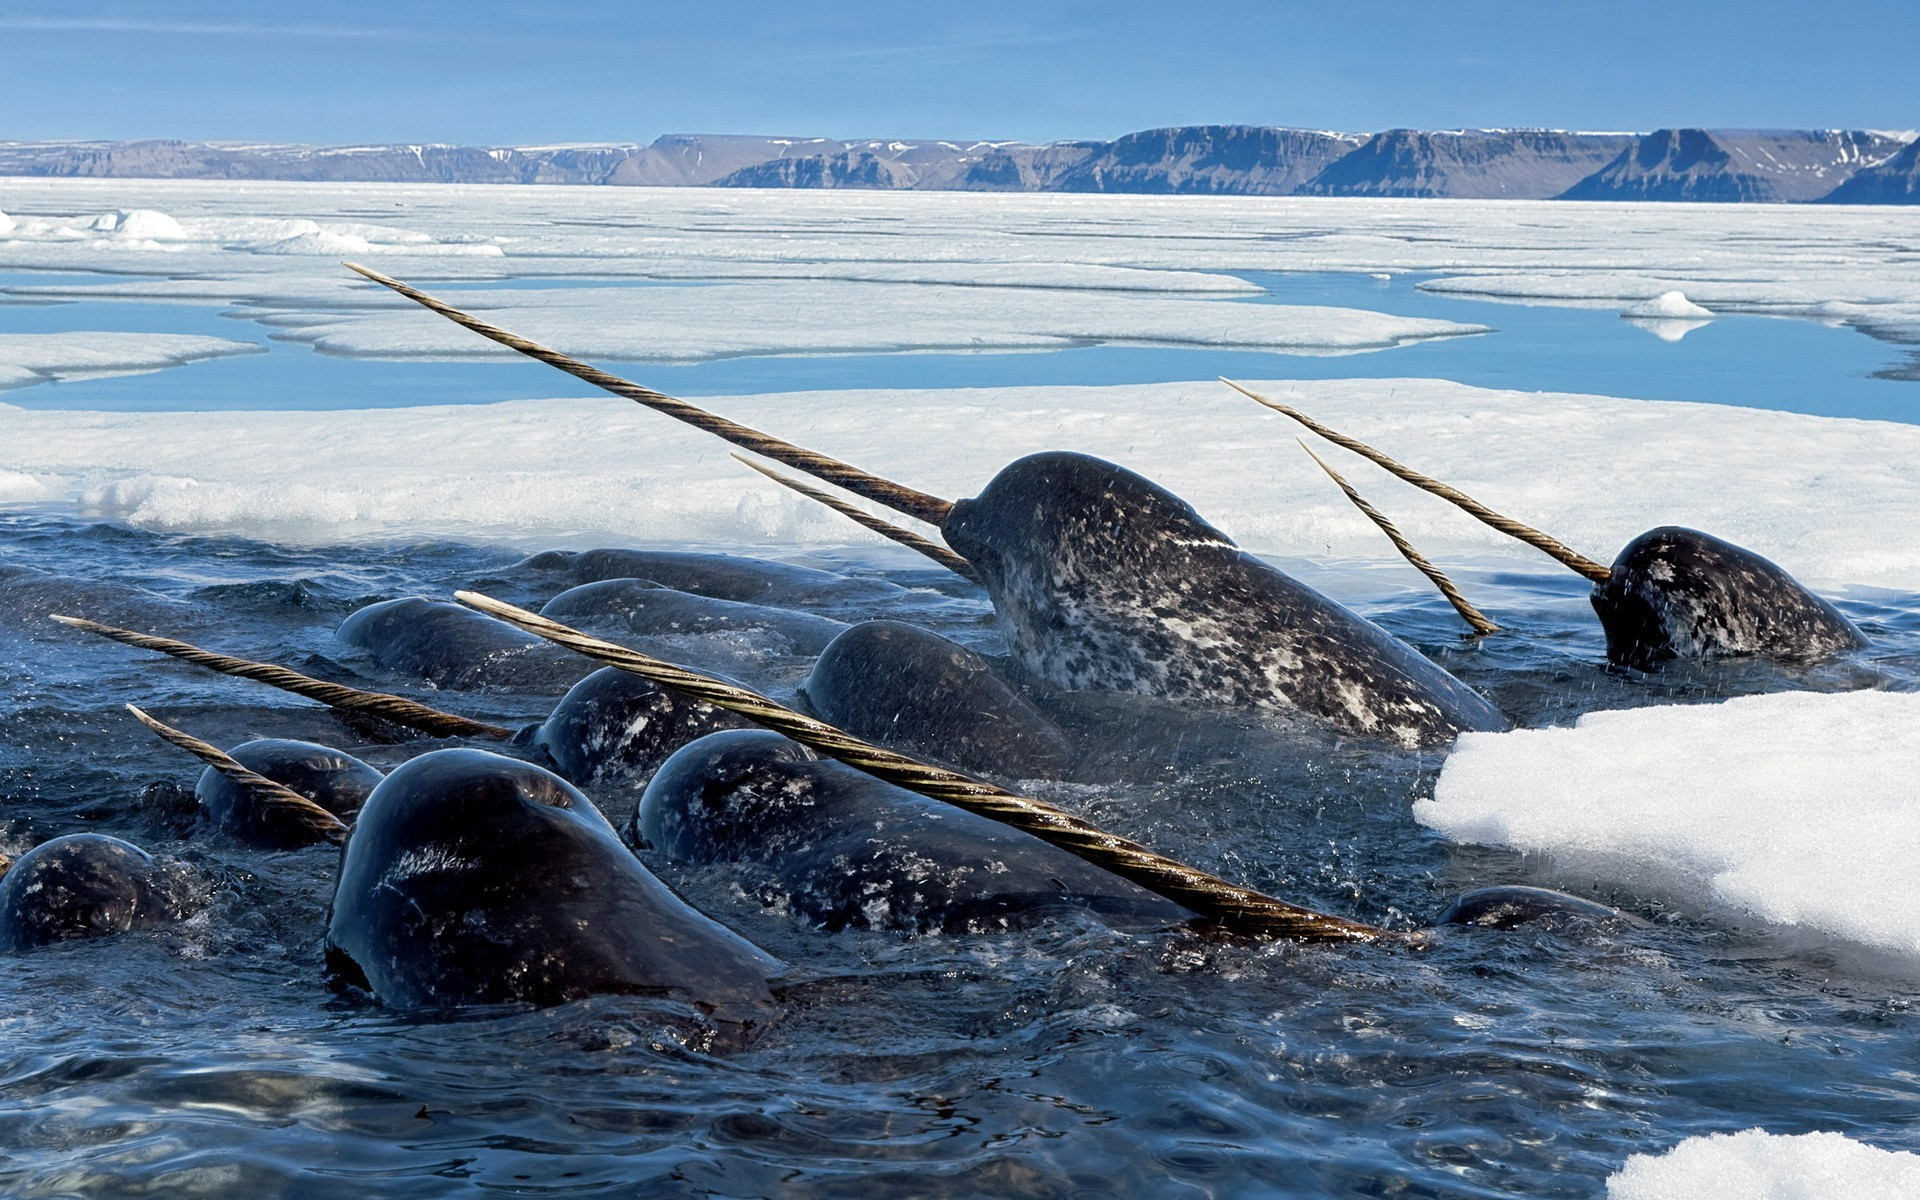 Ice Narwhal Wallpaper